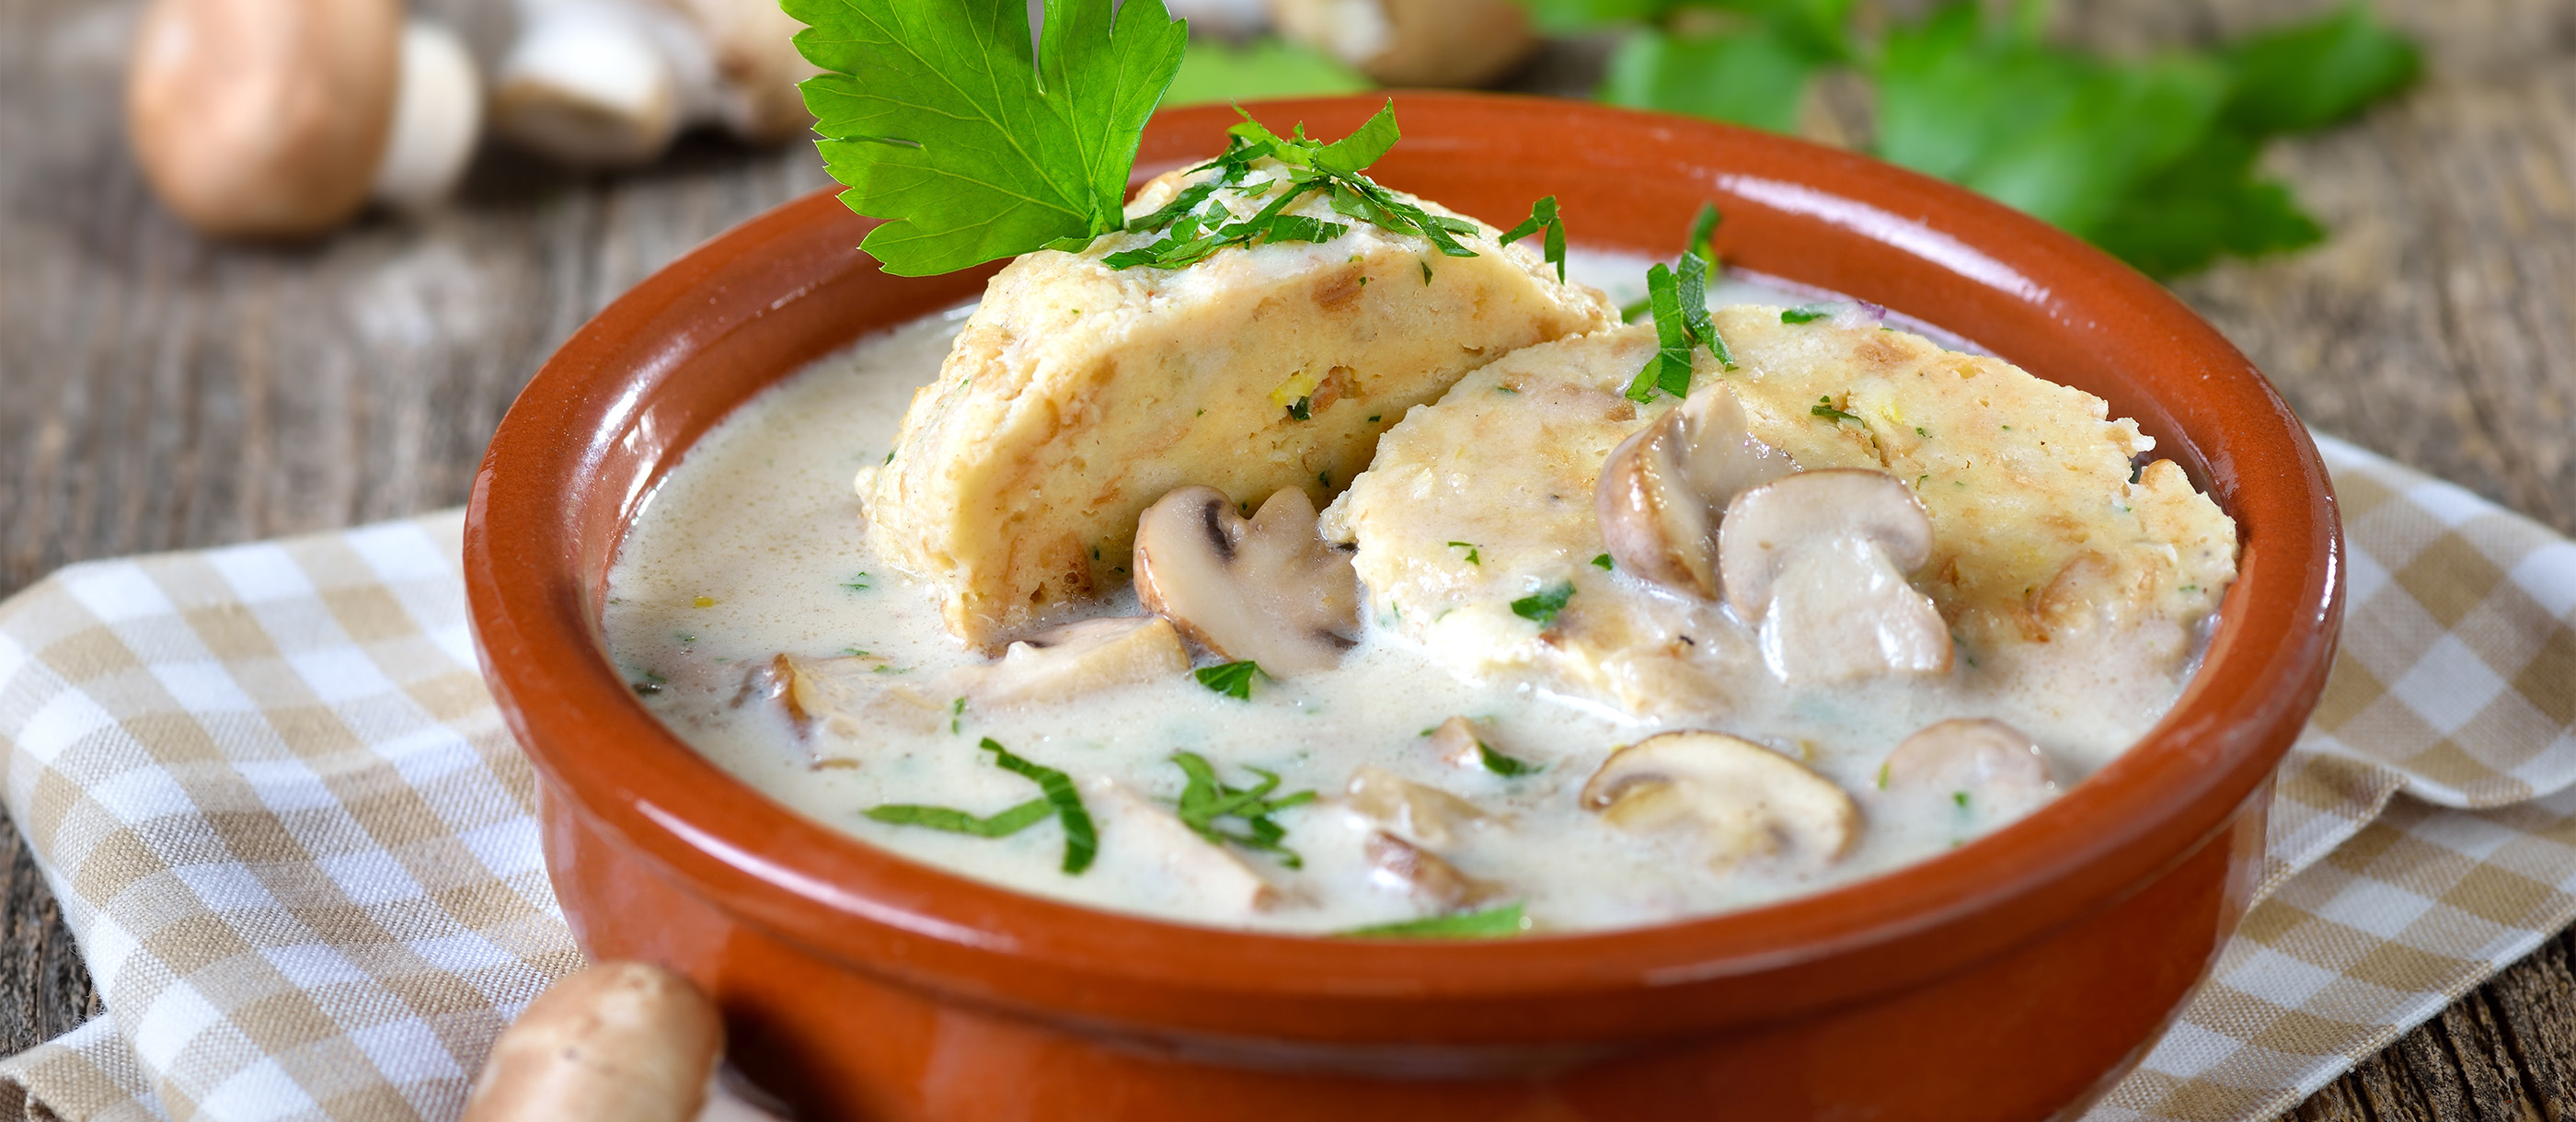 10 Most Popular German Side Dishes